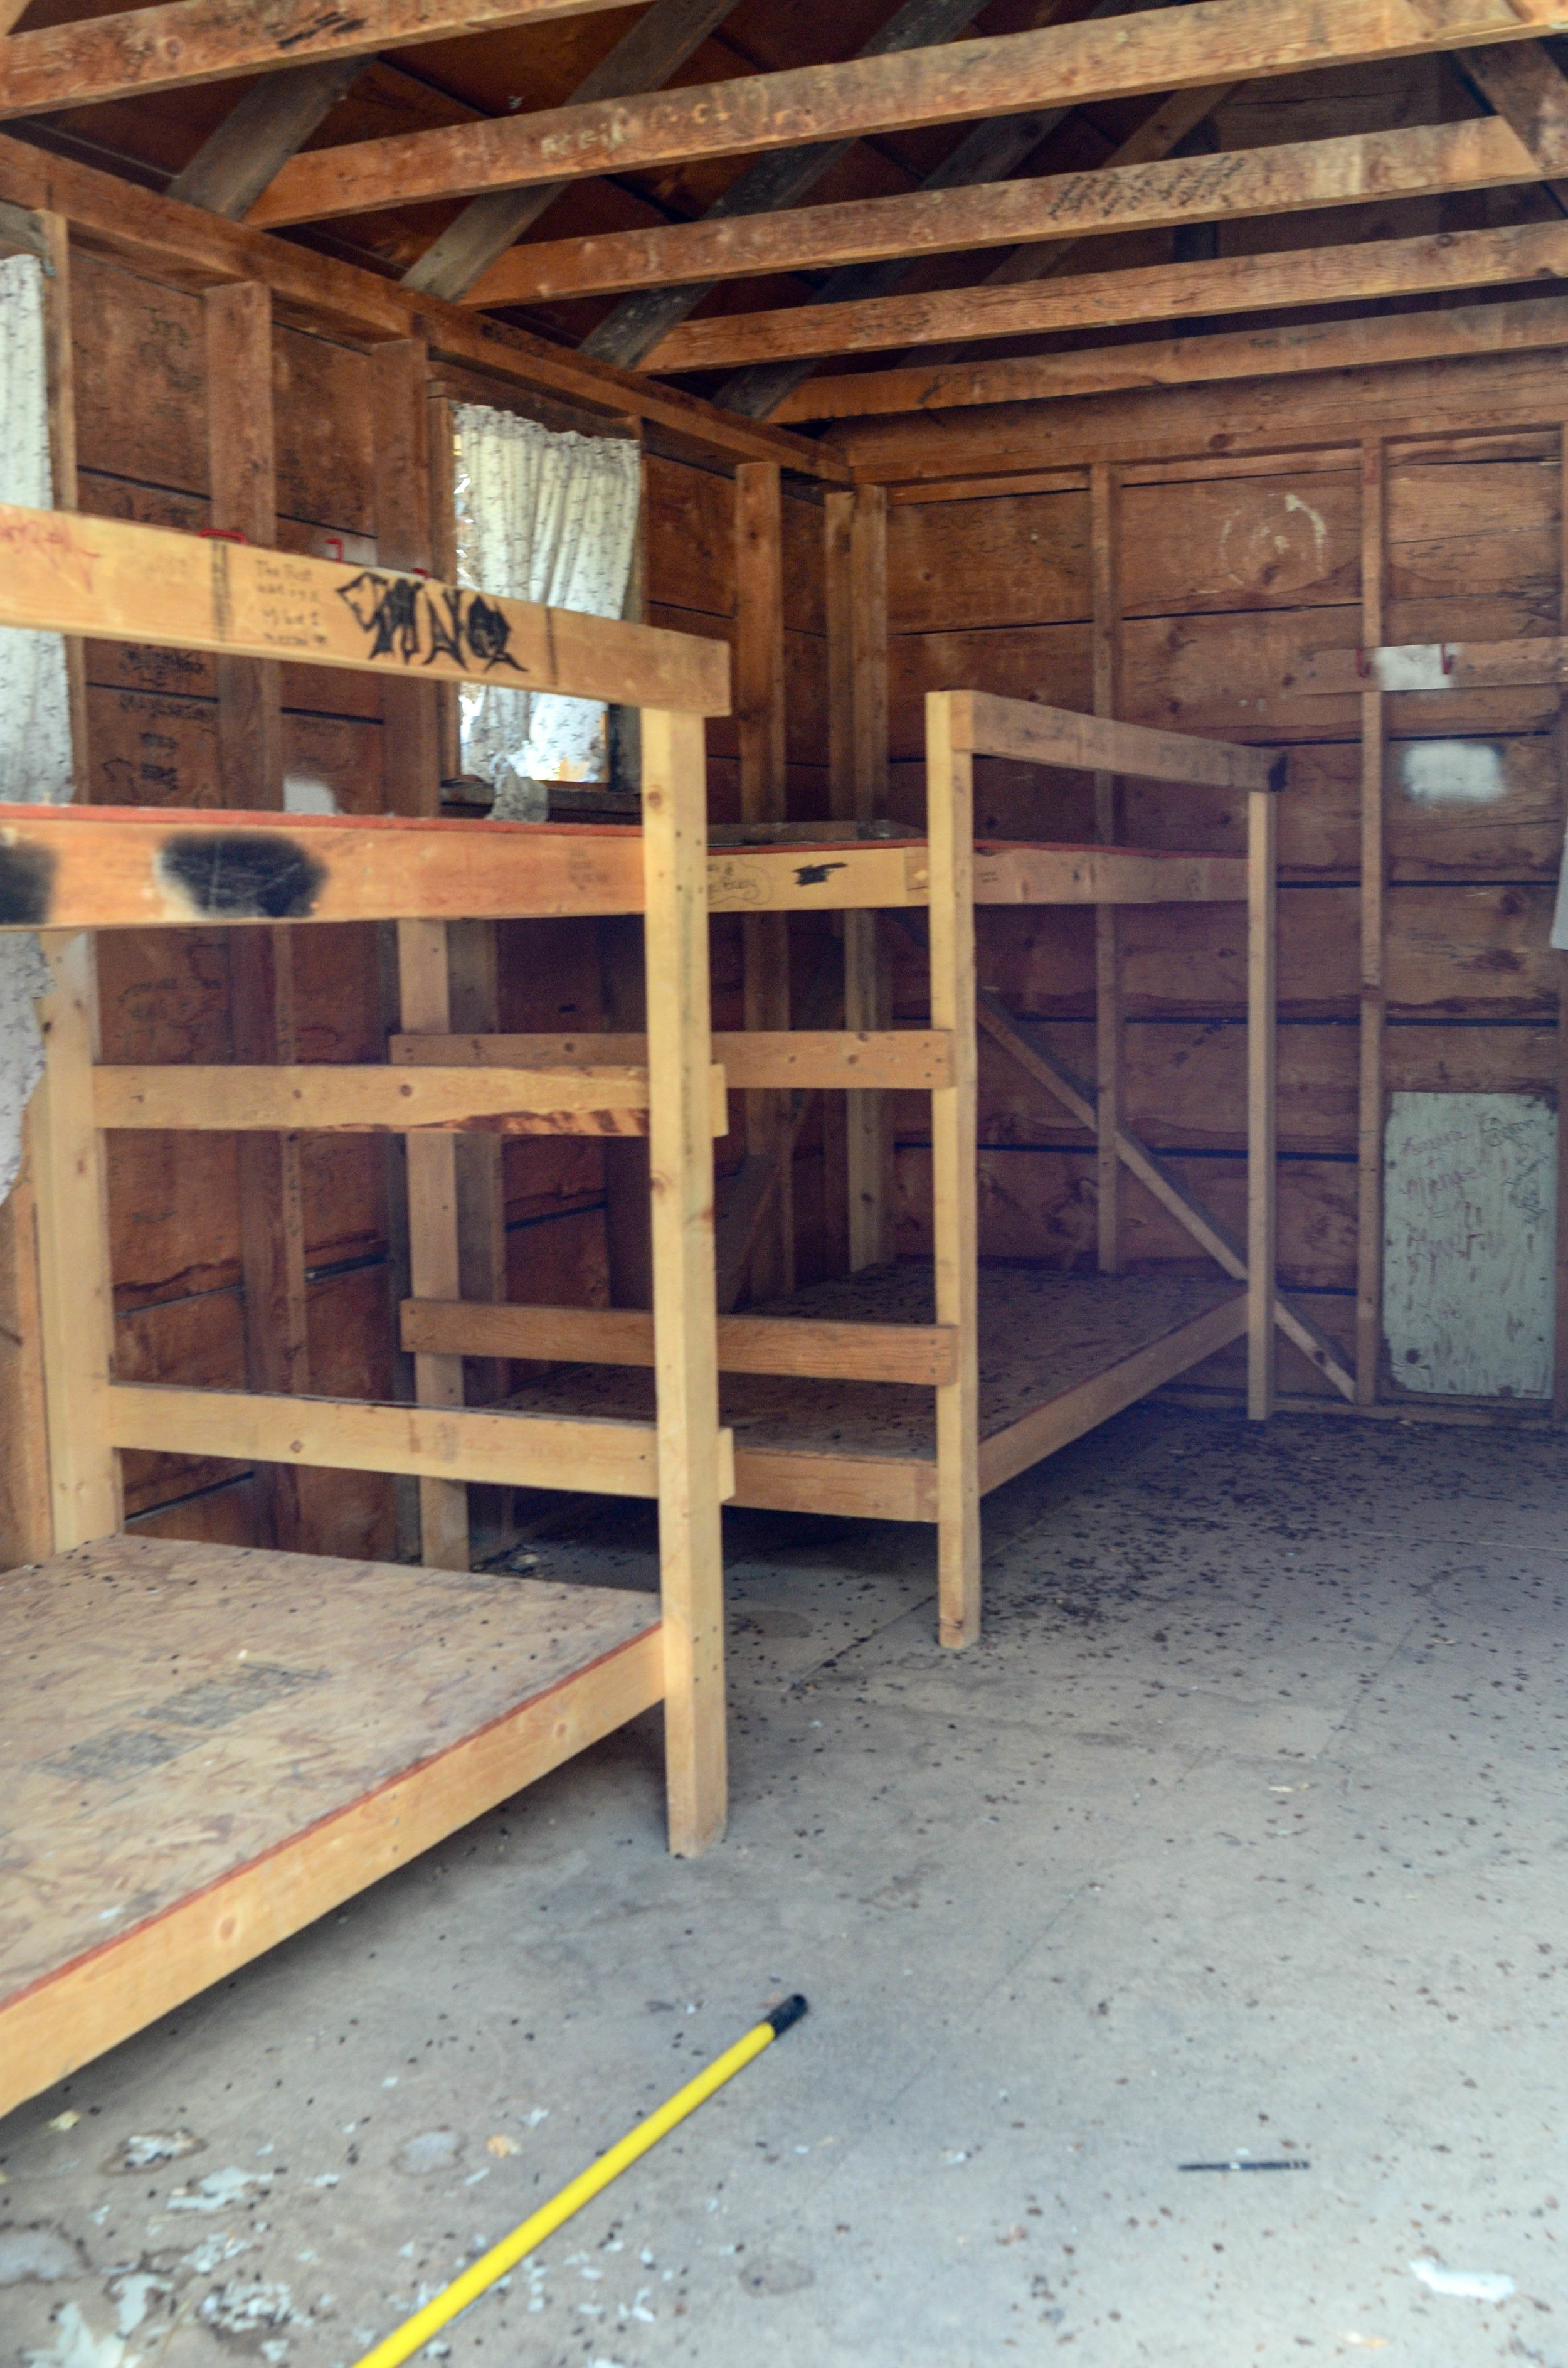 Old bunk beds inside cabins